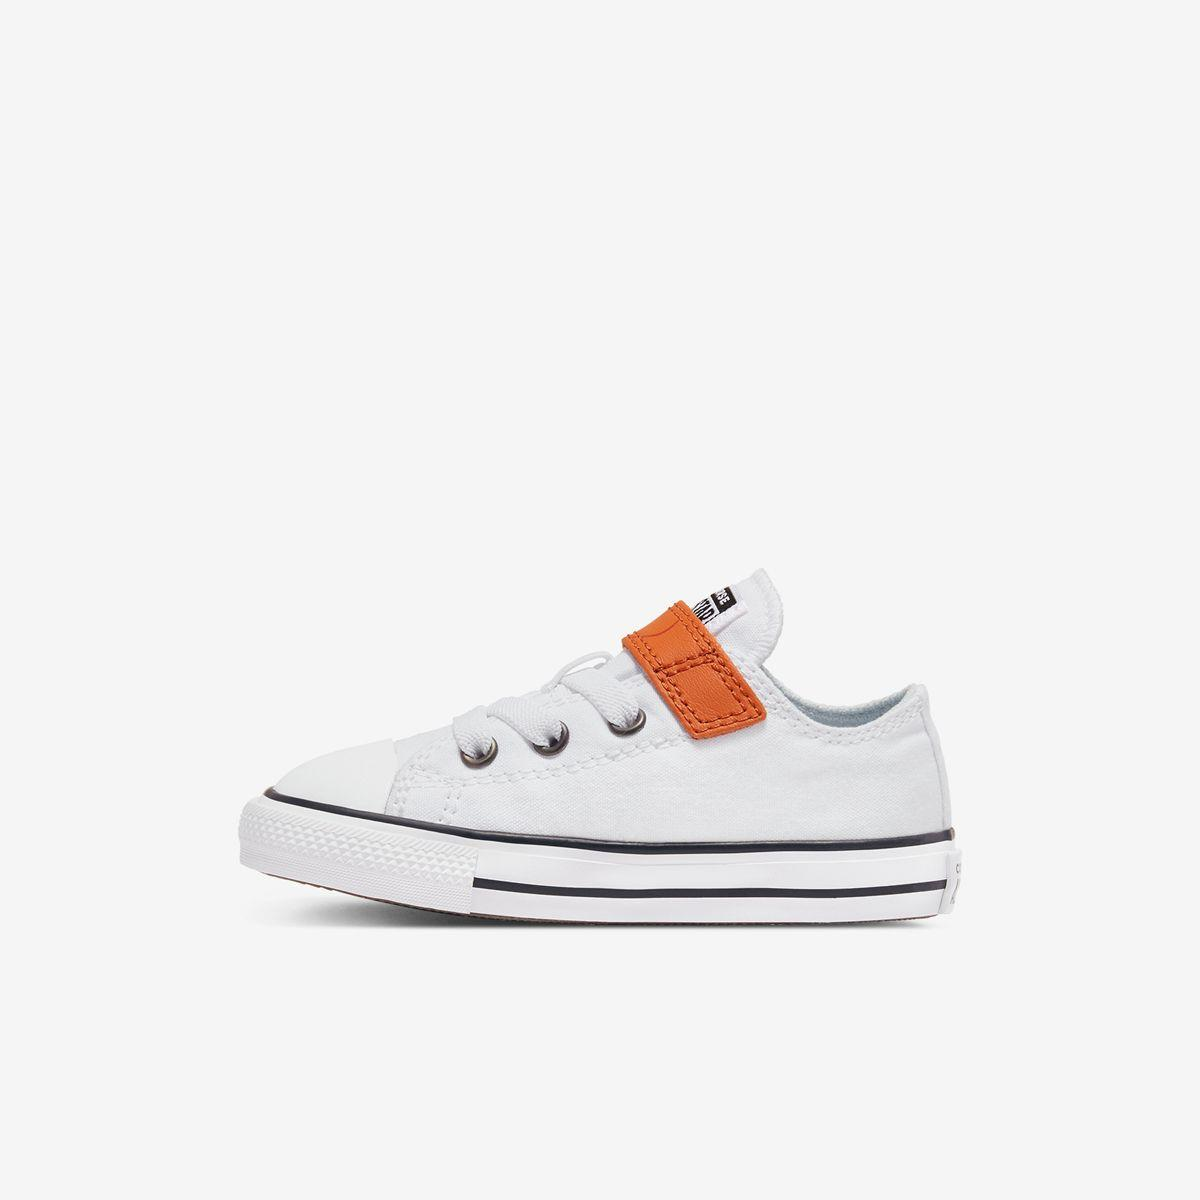 Converse x Frozen 2 Chuck Taylor All Star Low Top